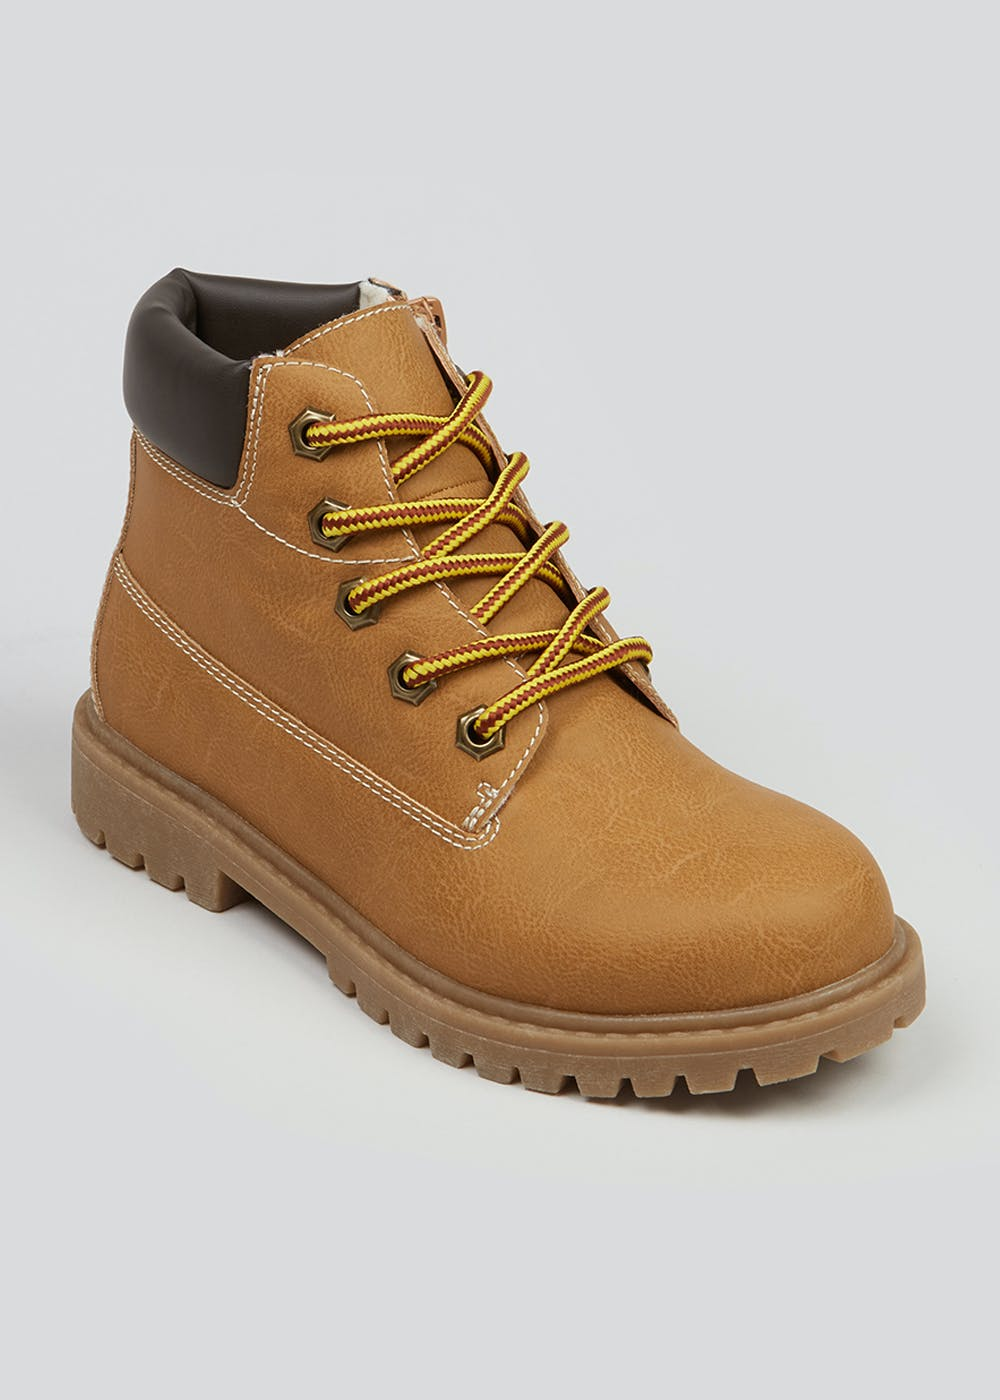 Boys Tan Hiker Boots (Younger 10-Older 6) – Tan